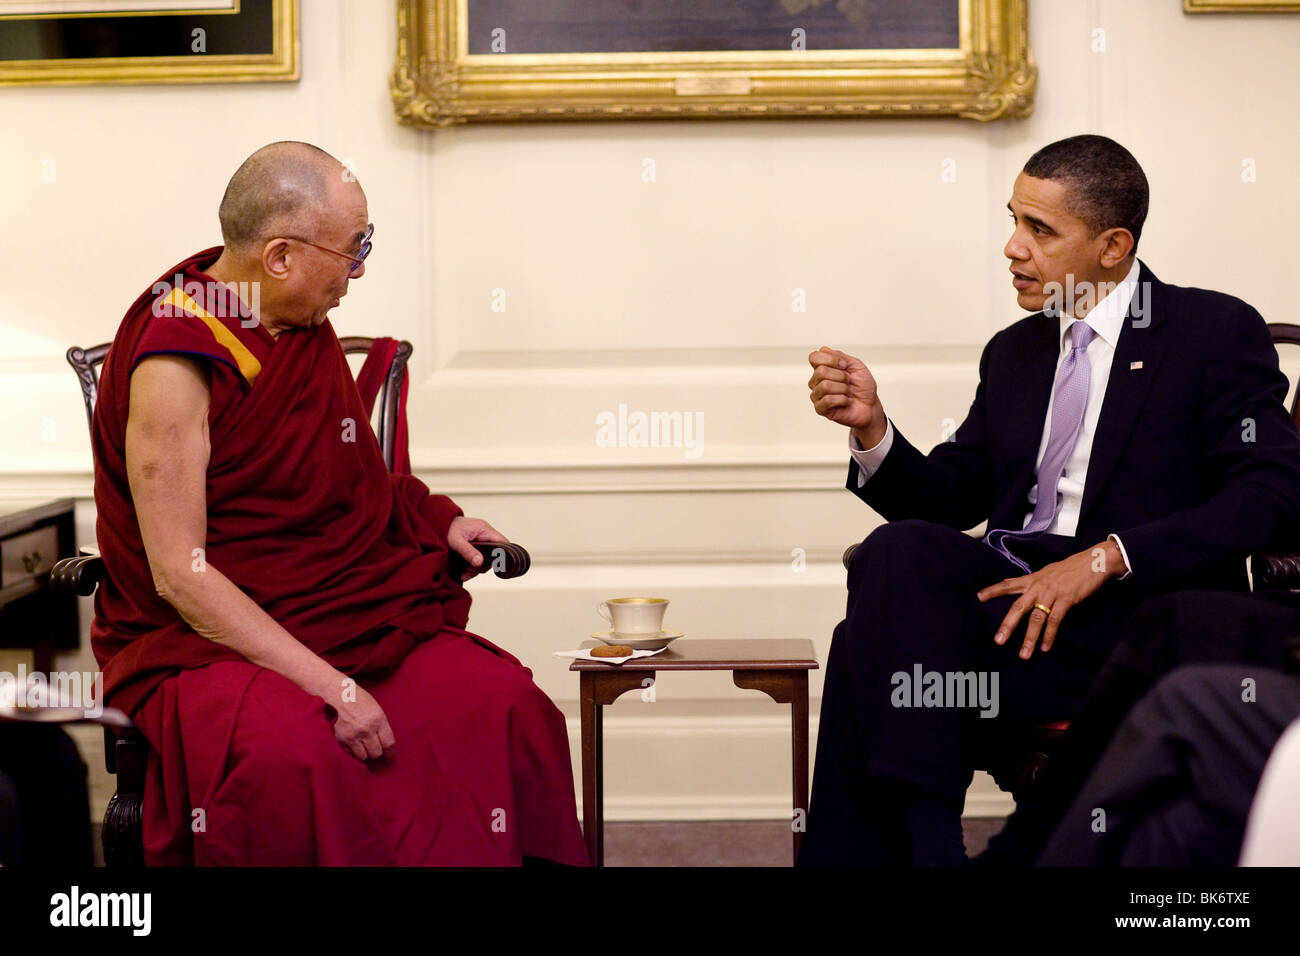 President Barack Obama meets with His Holiness the Dalai Lama in the Map Room of the White House, Feb. 18, 2010. - Stock Image